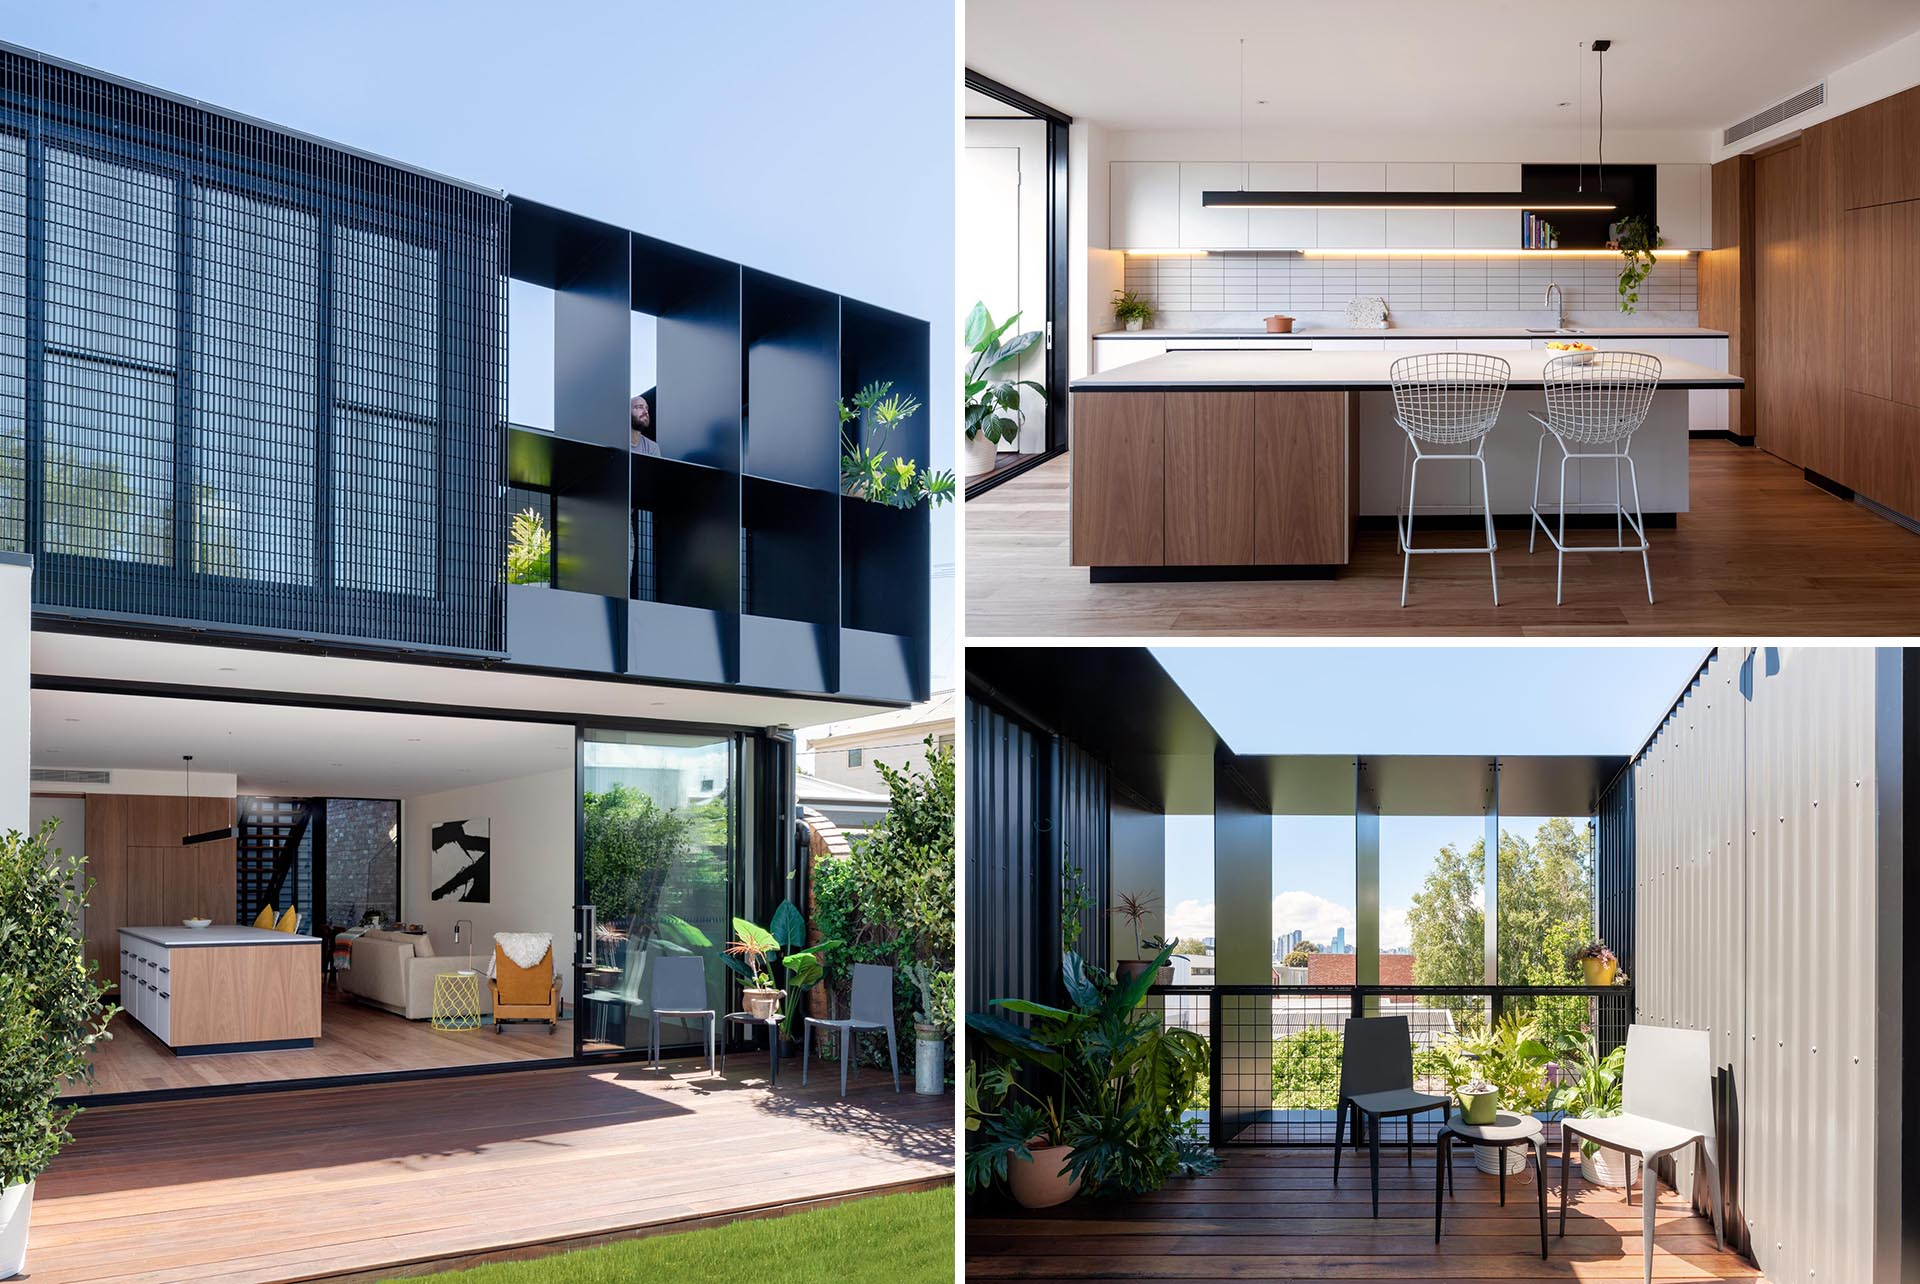 A modern dark gray metal house extension with a modern interior.